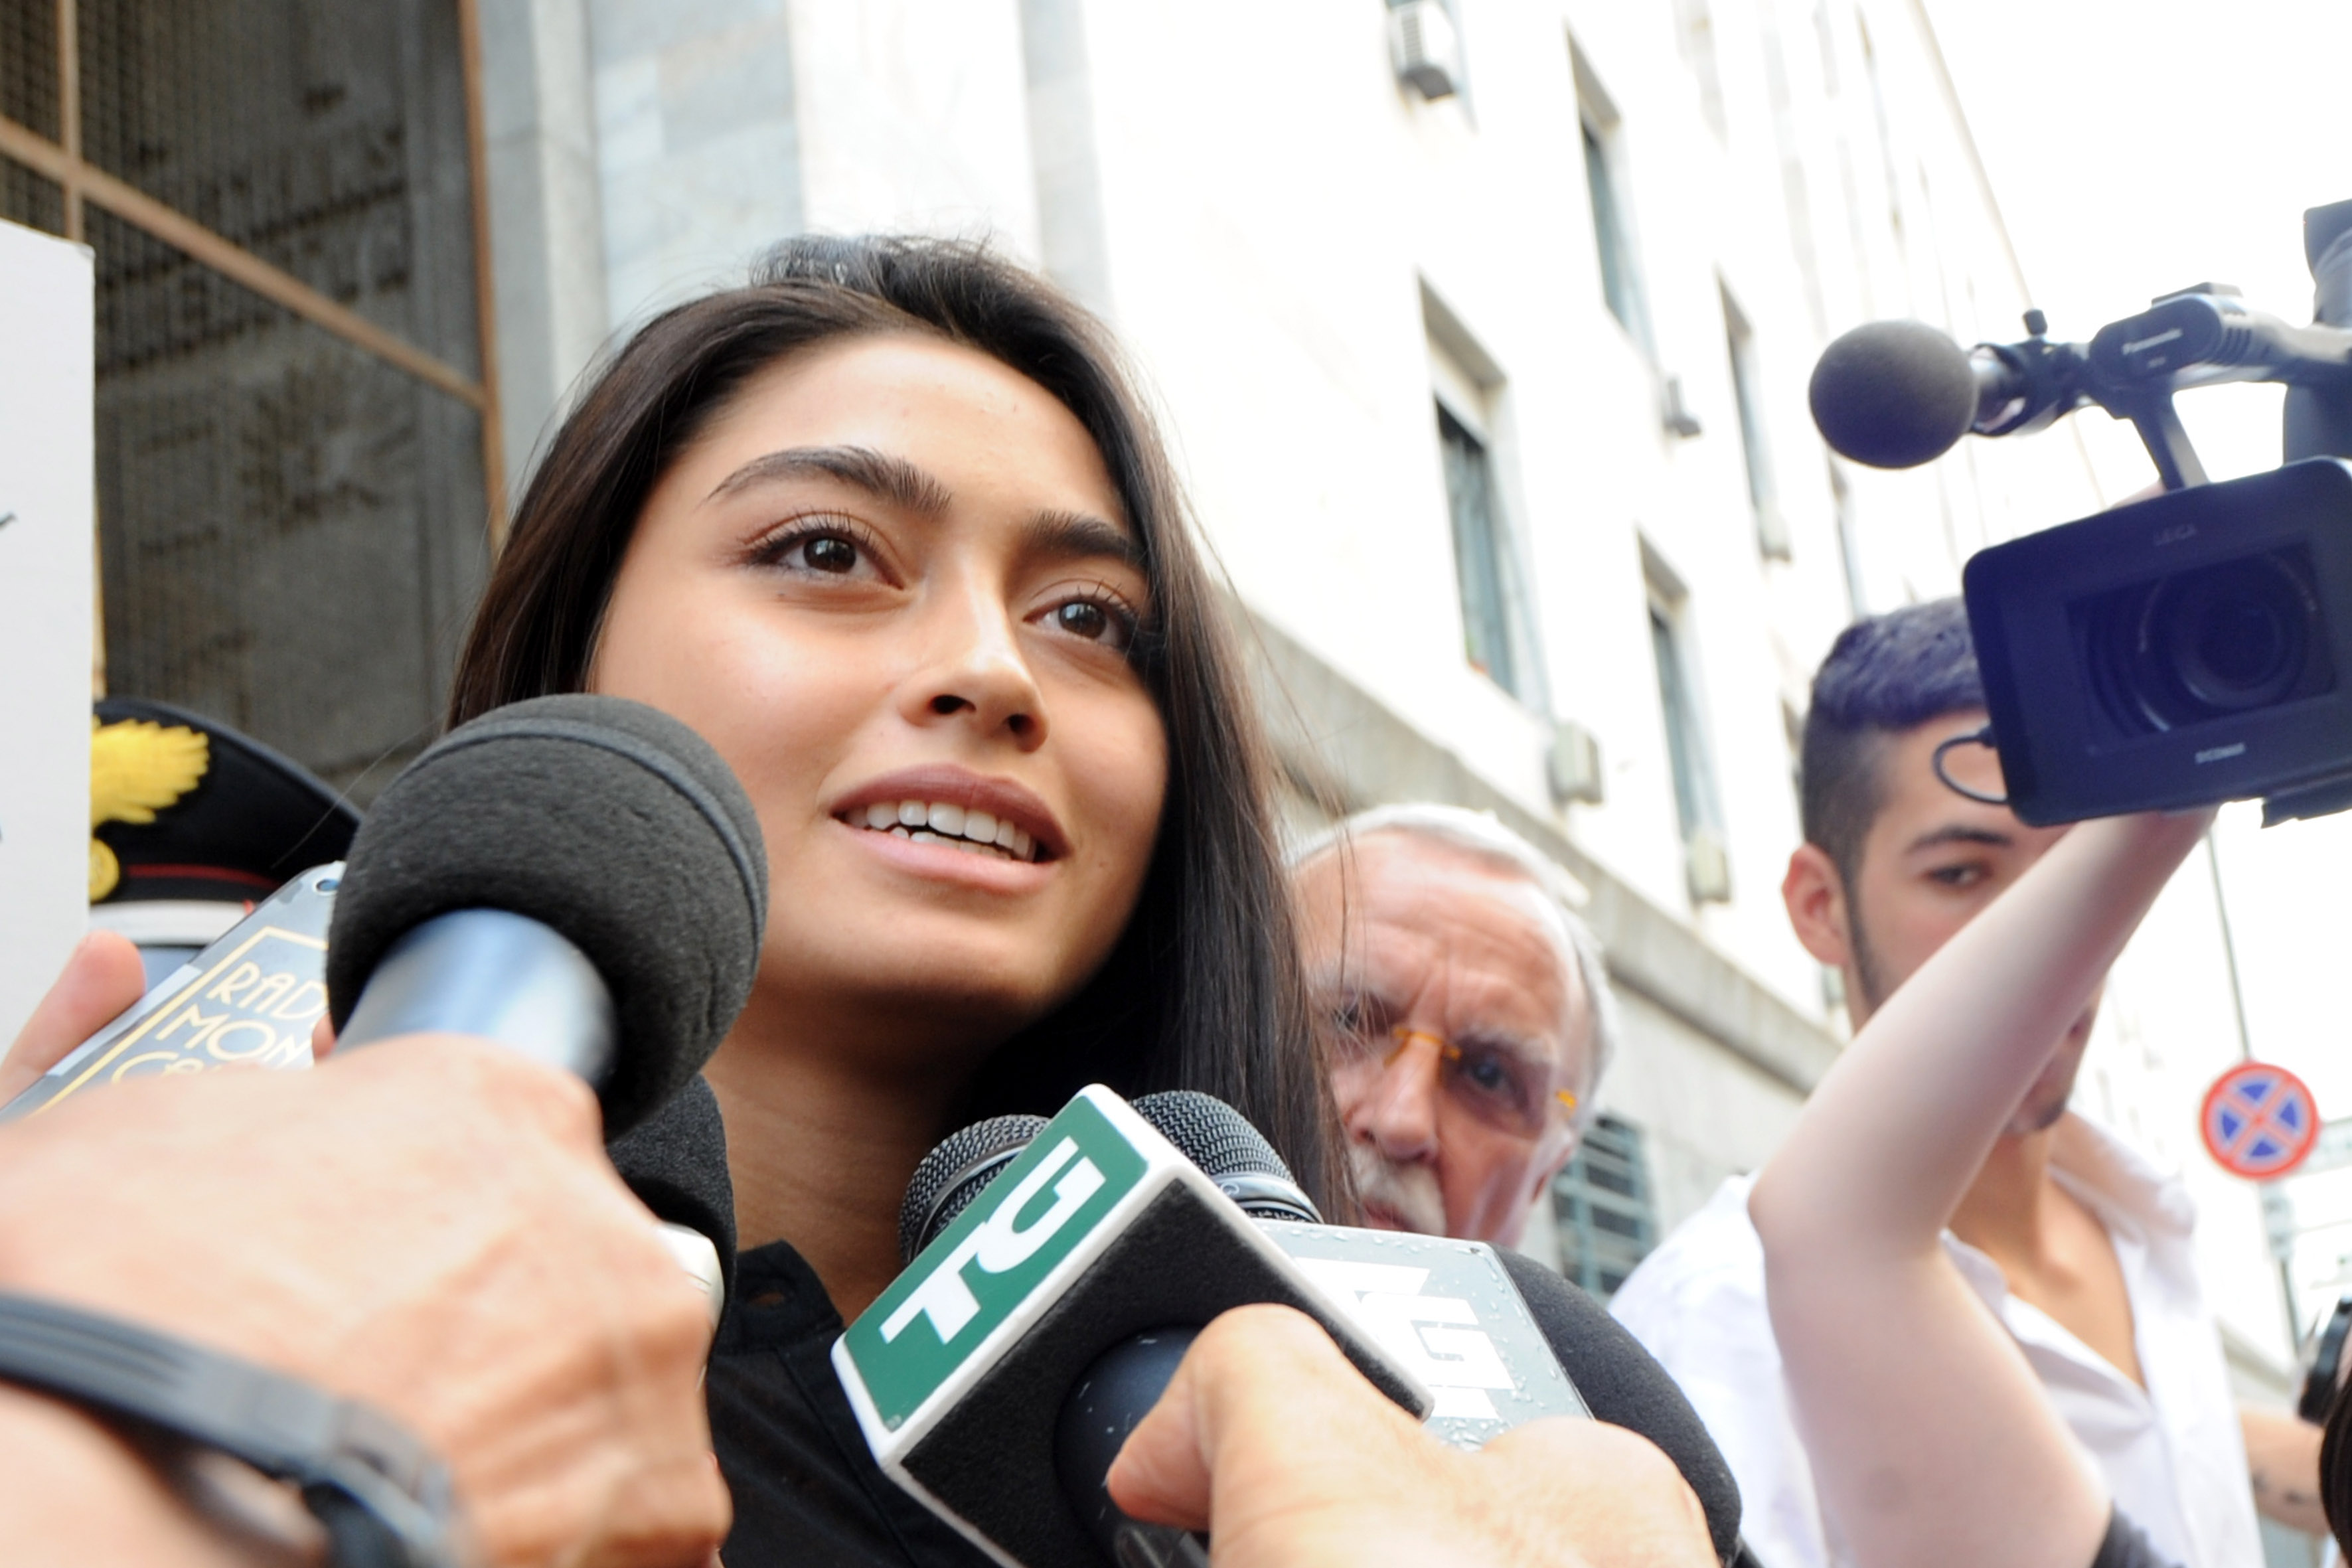 Ambra Battilana speaks to media outside the courthouse on July 19, 2013 in Milan, Italy. (Pier Marco Tacca/Getty Images)